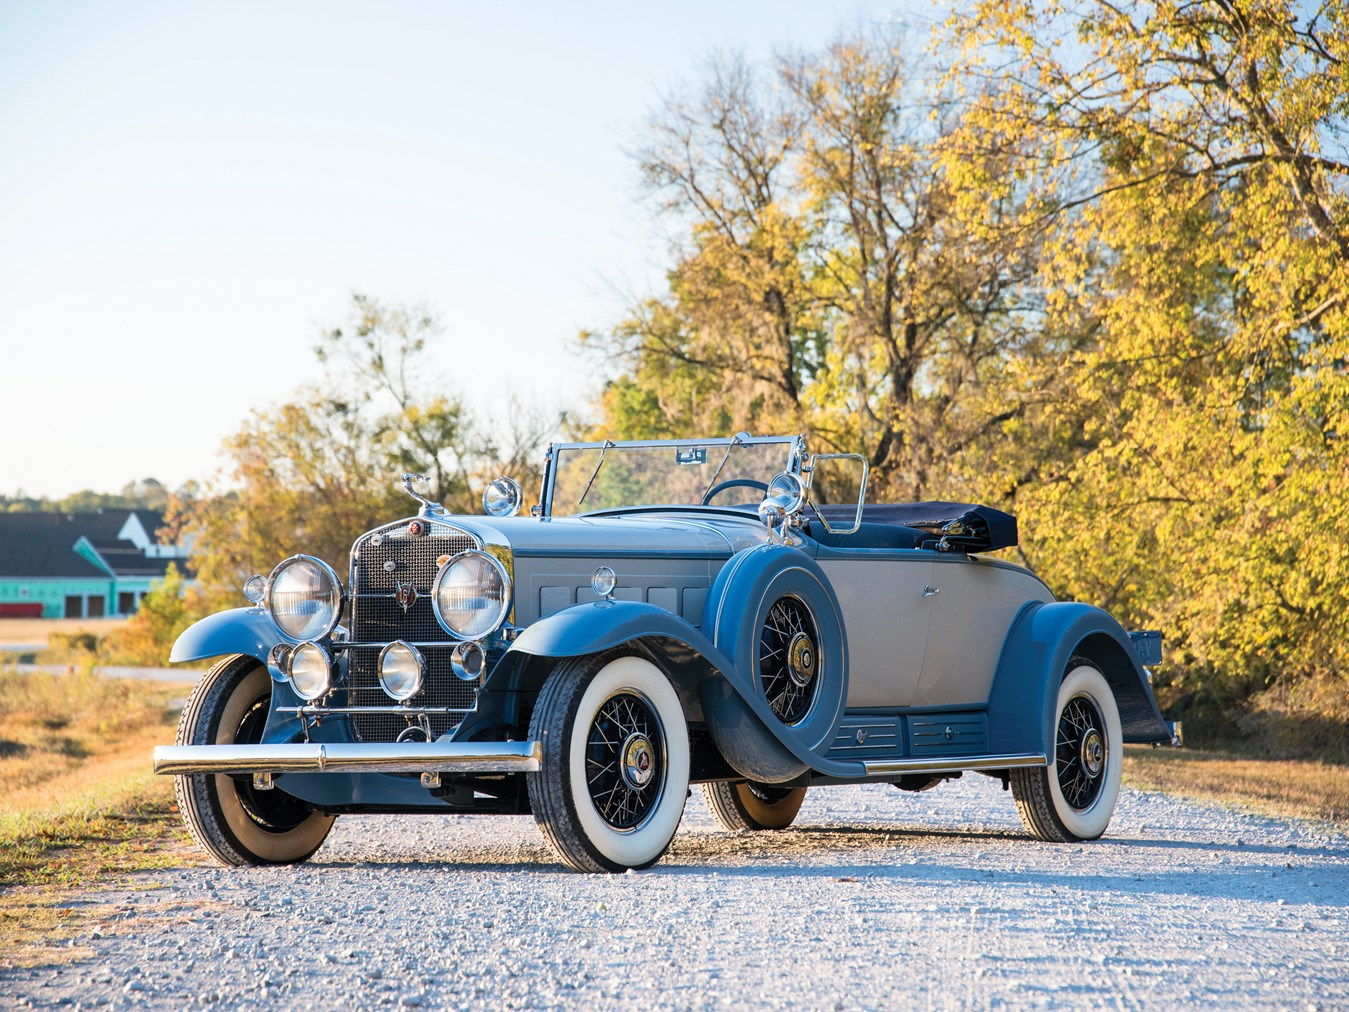 1930 Cadillac Series 452 Fleetwood Roadster